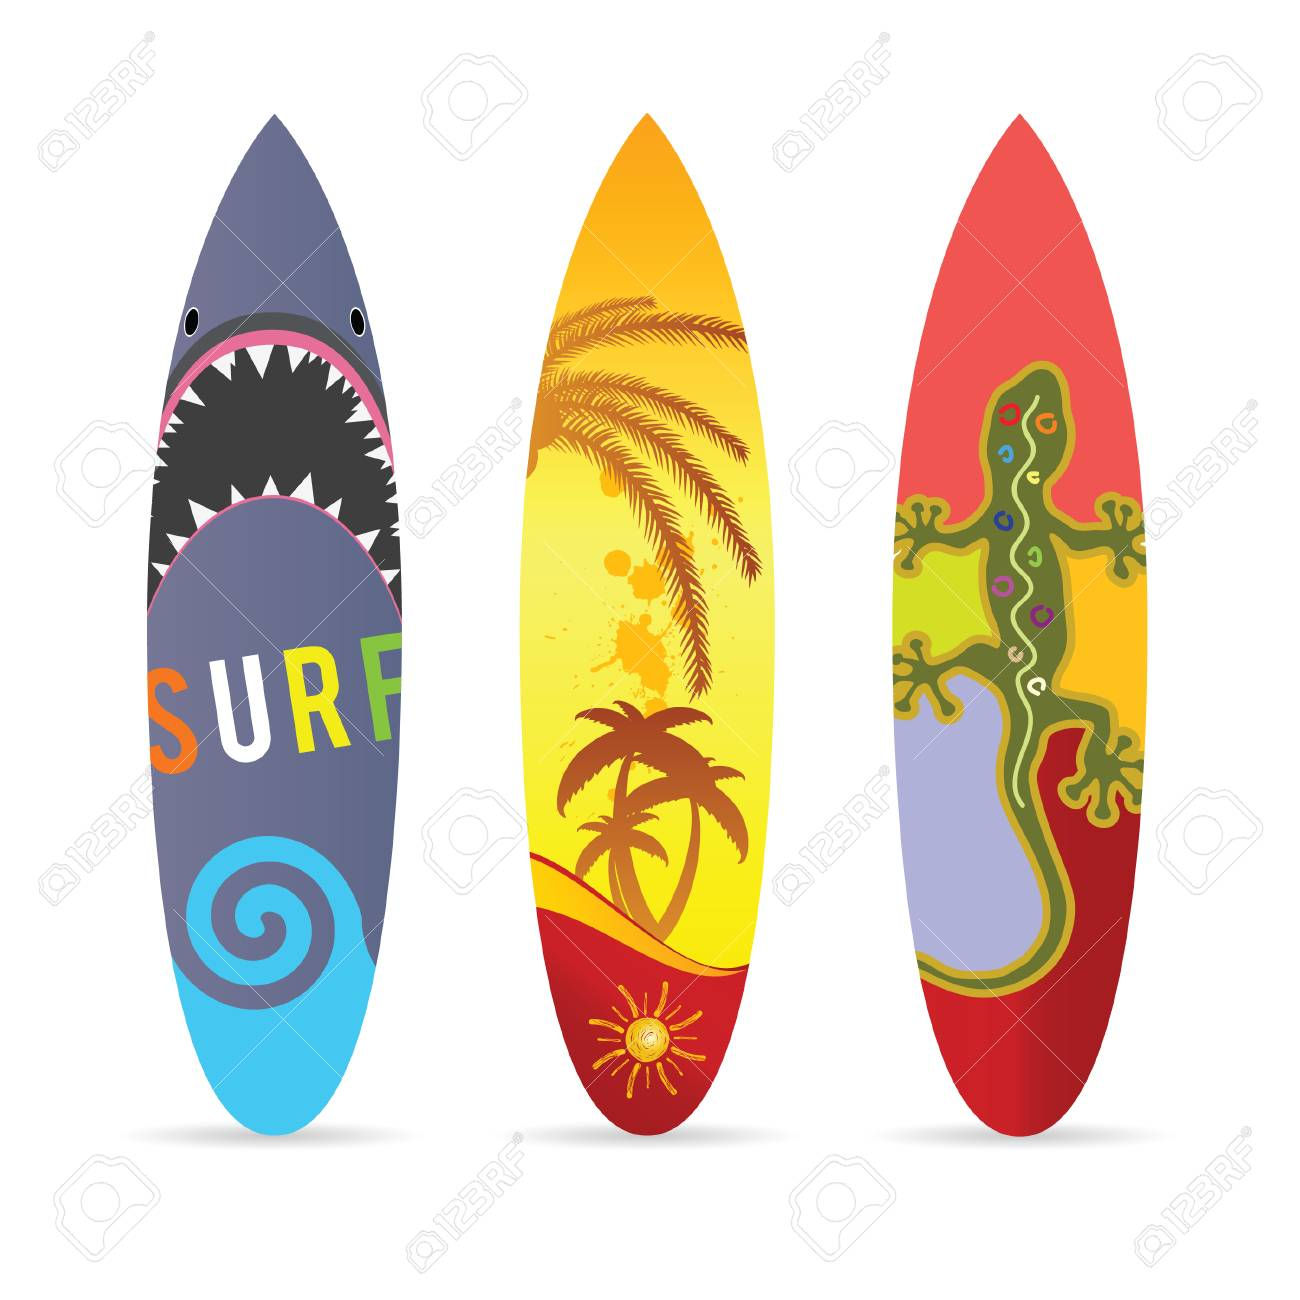 surf board set in various color illustration on white royalty free